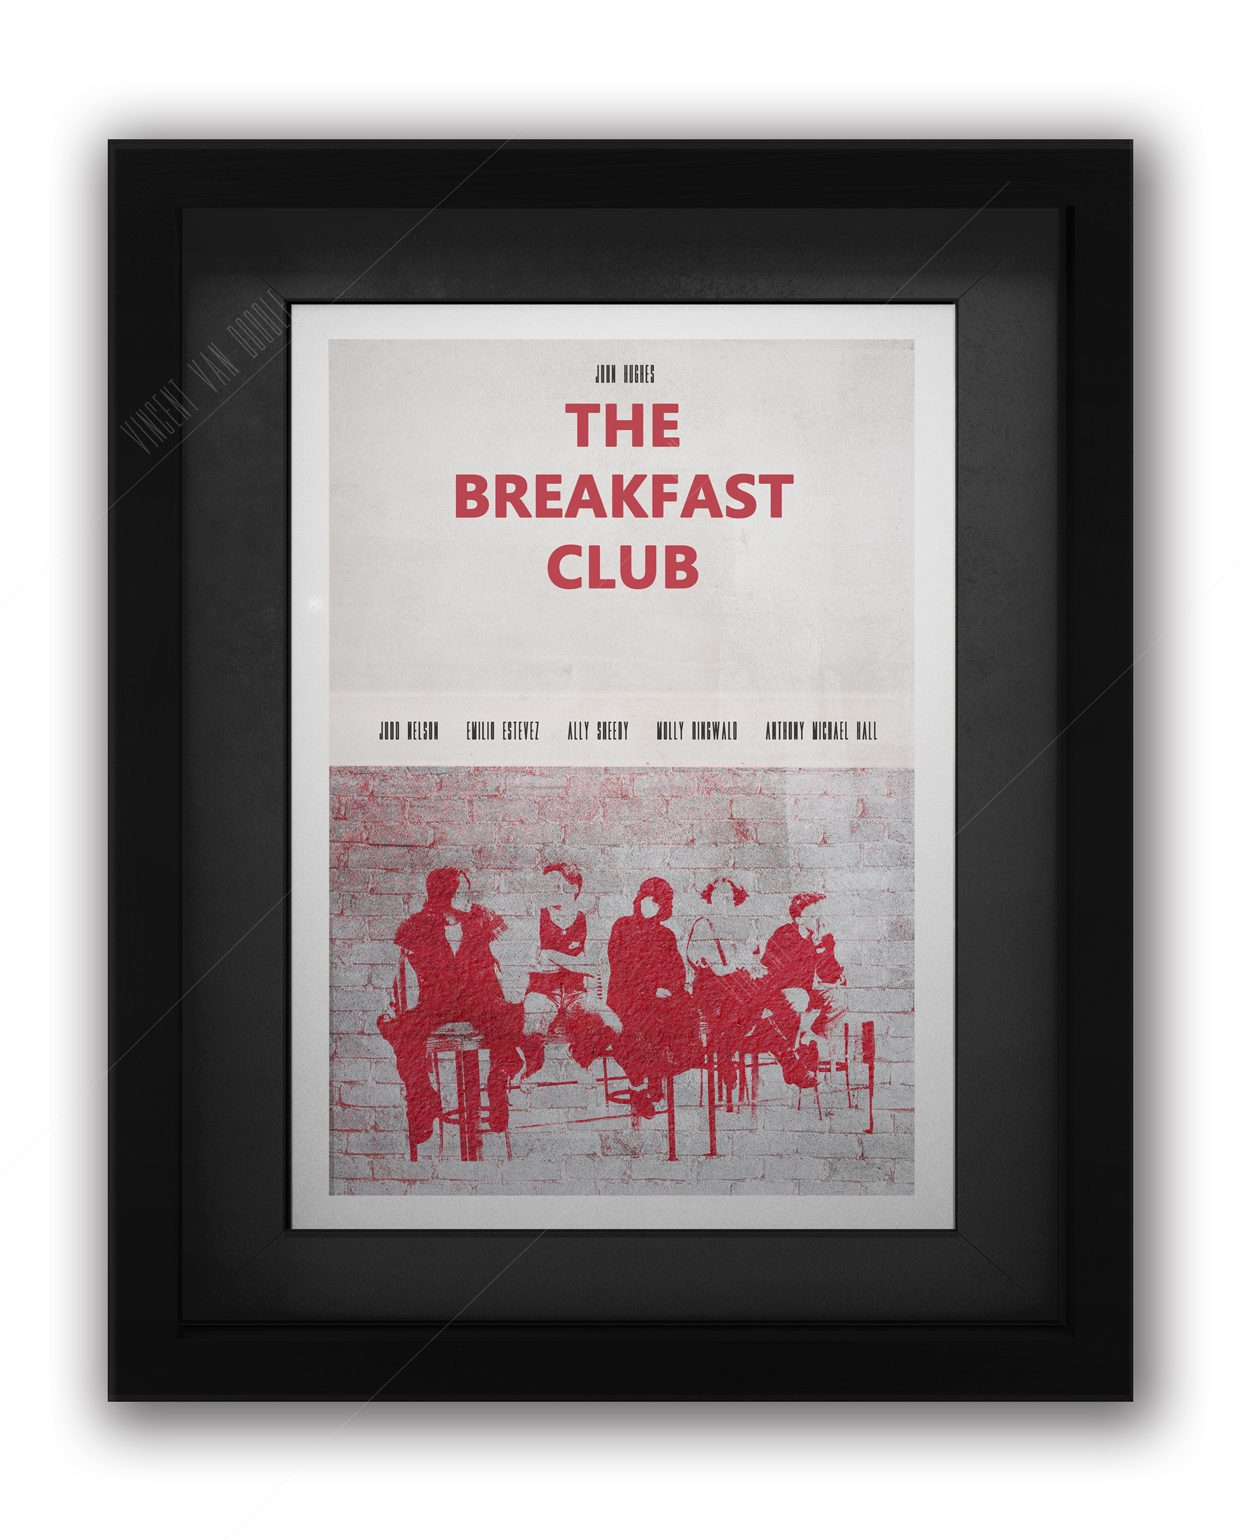 Breakfast-Club-Framed